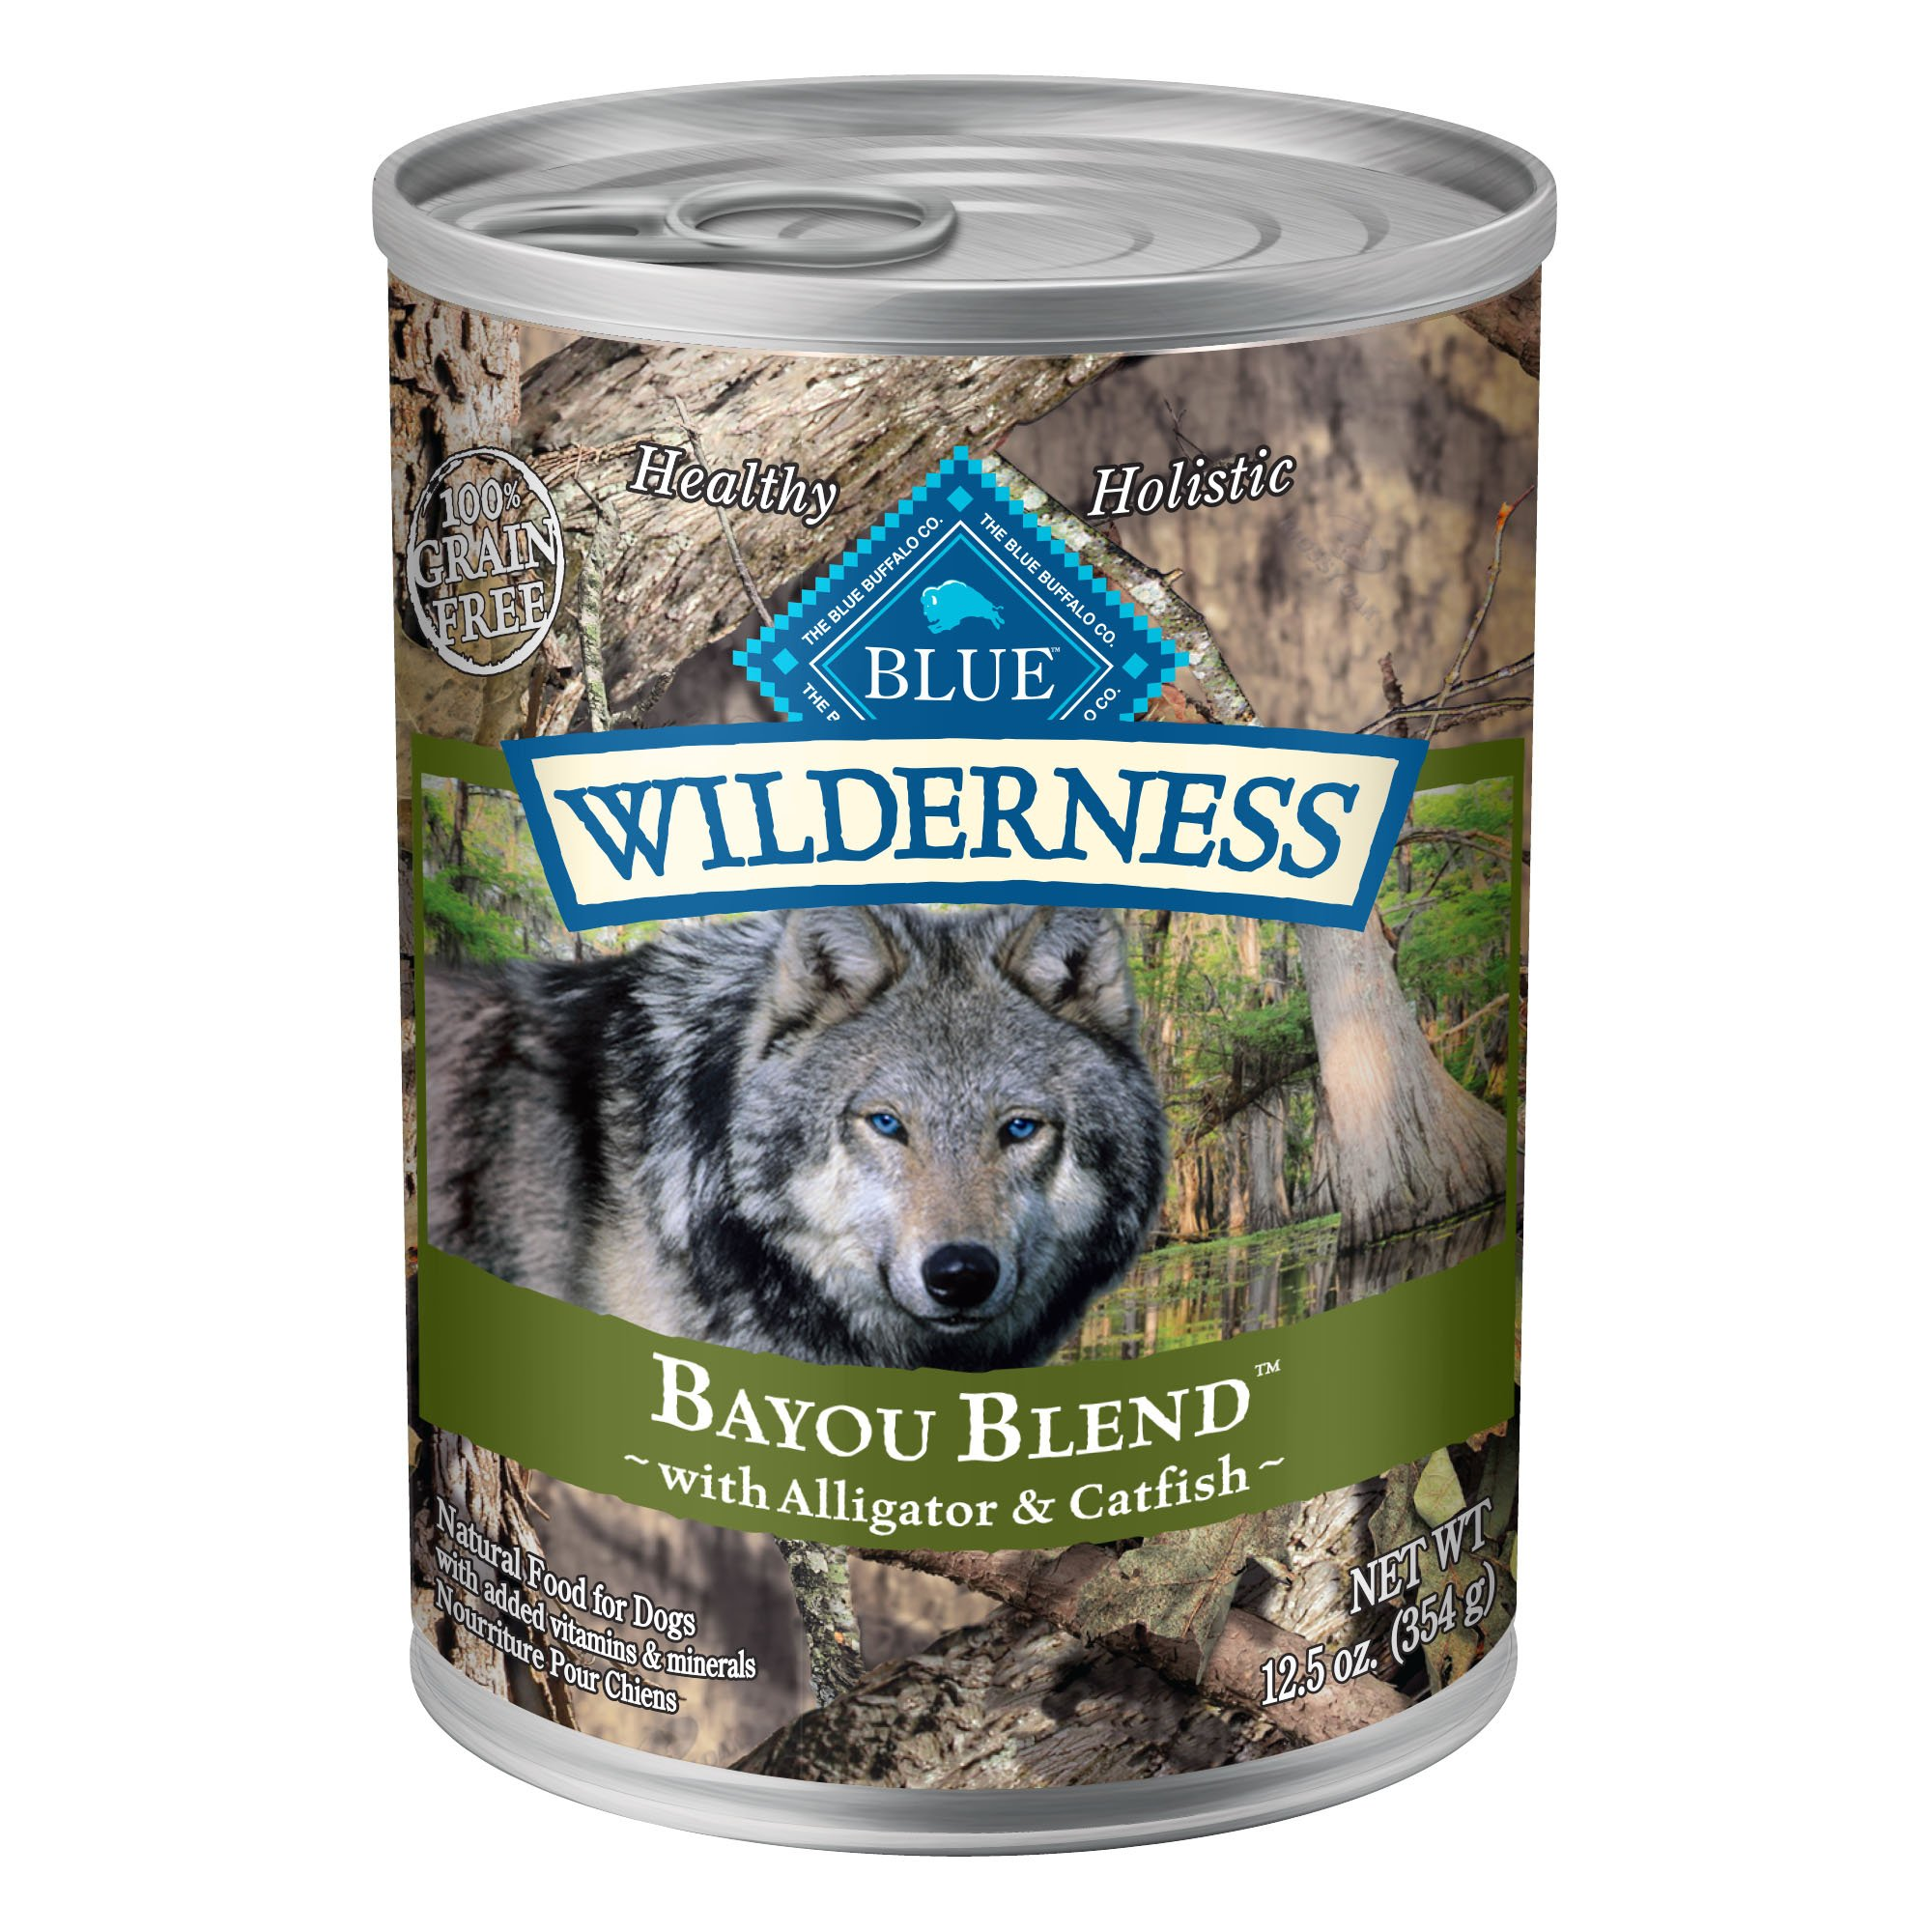 After switching to BLUE Buffalo Grain-Free and changing her treats she is a whole new pup. The dog food has firmed her stools and she goes to the bathroom regularly. I also pair this food with the canned BLUE Buffalo Grain-Free for dinner, which she loves!